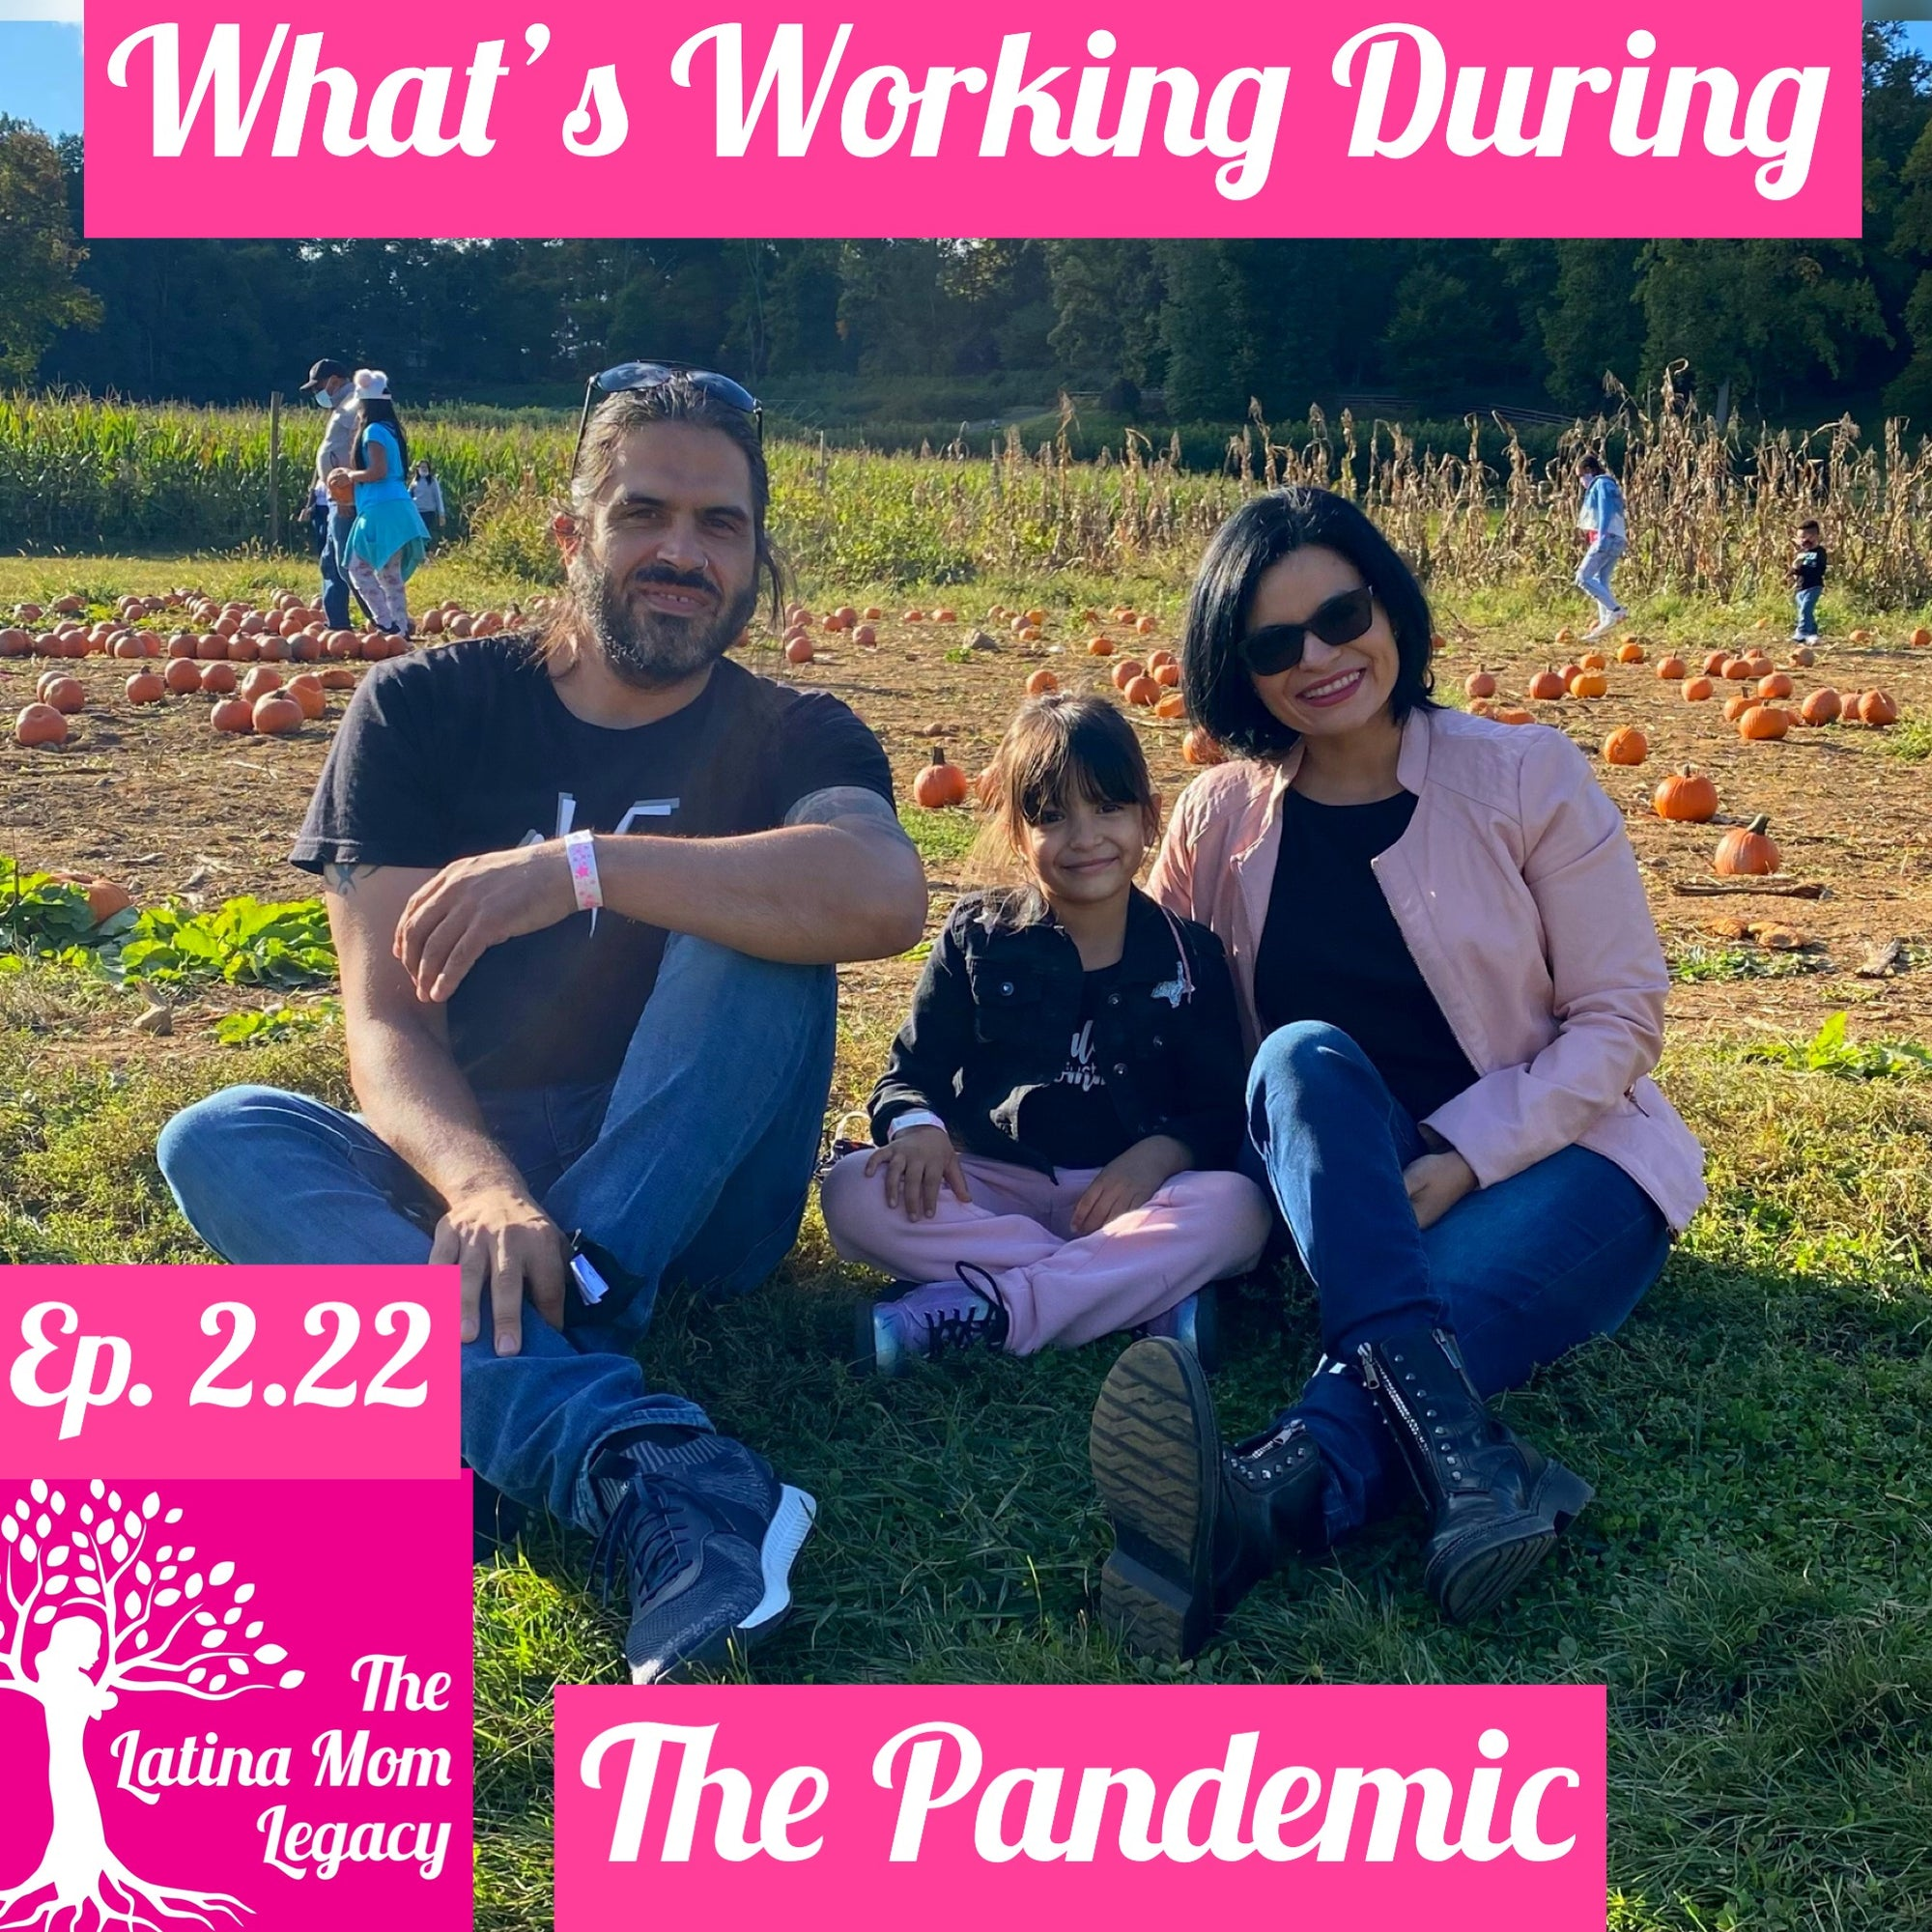 2.22 Janny Perez & Percy Trayanov - What's working for this Multicultural Family During the Pandemic